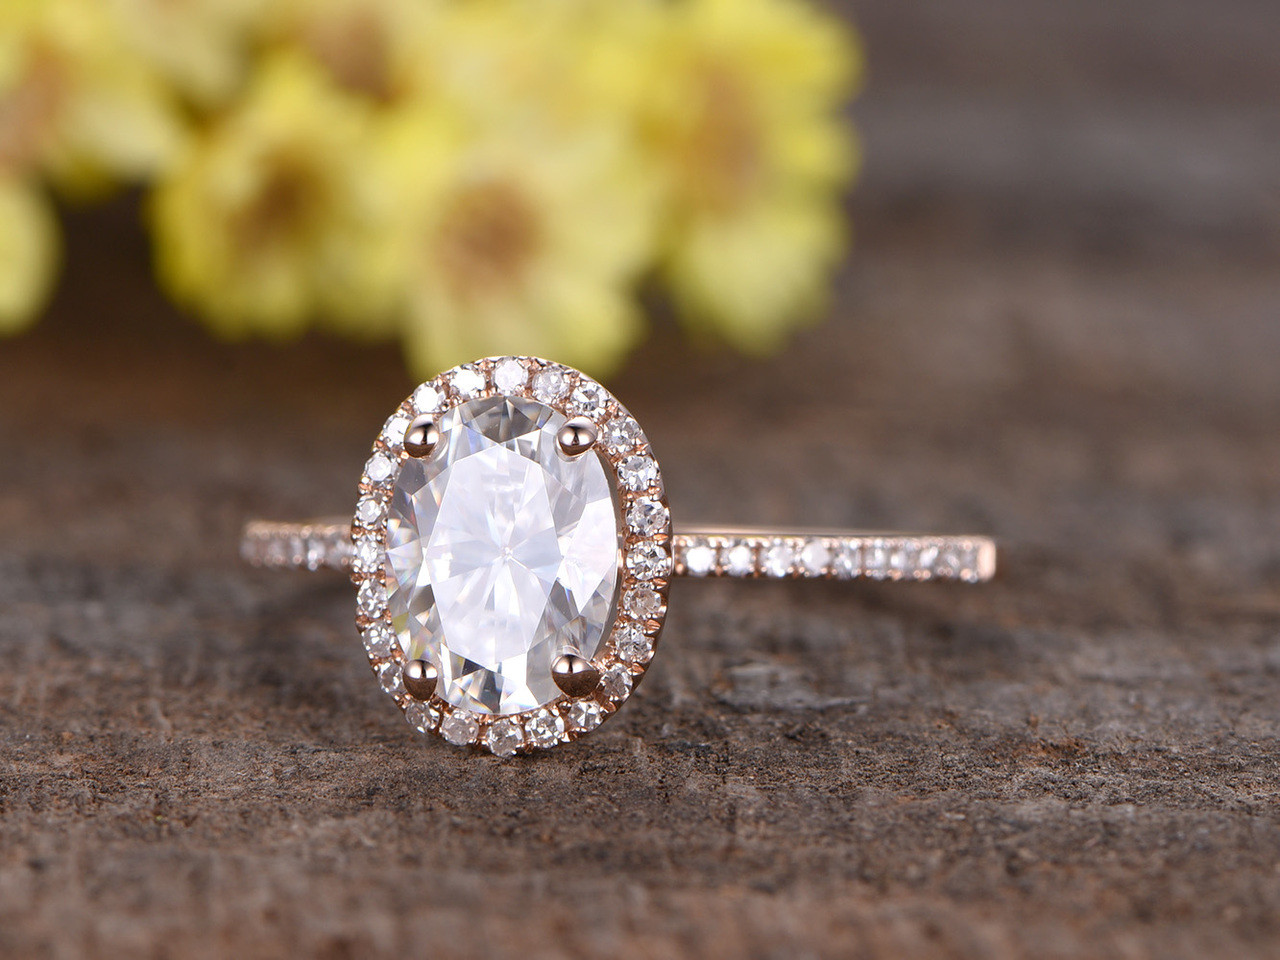 sofia ring rings free engagement wedding carat paired pav halo pin diamond a oval with conflict moissanite band